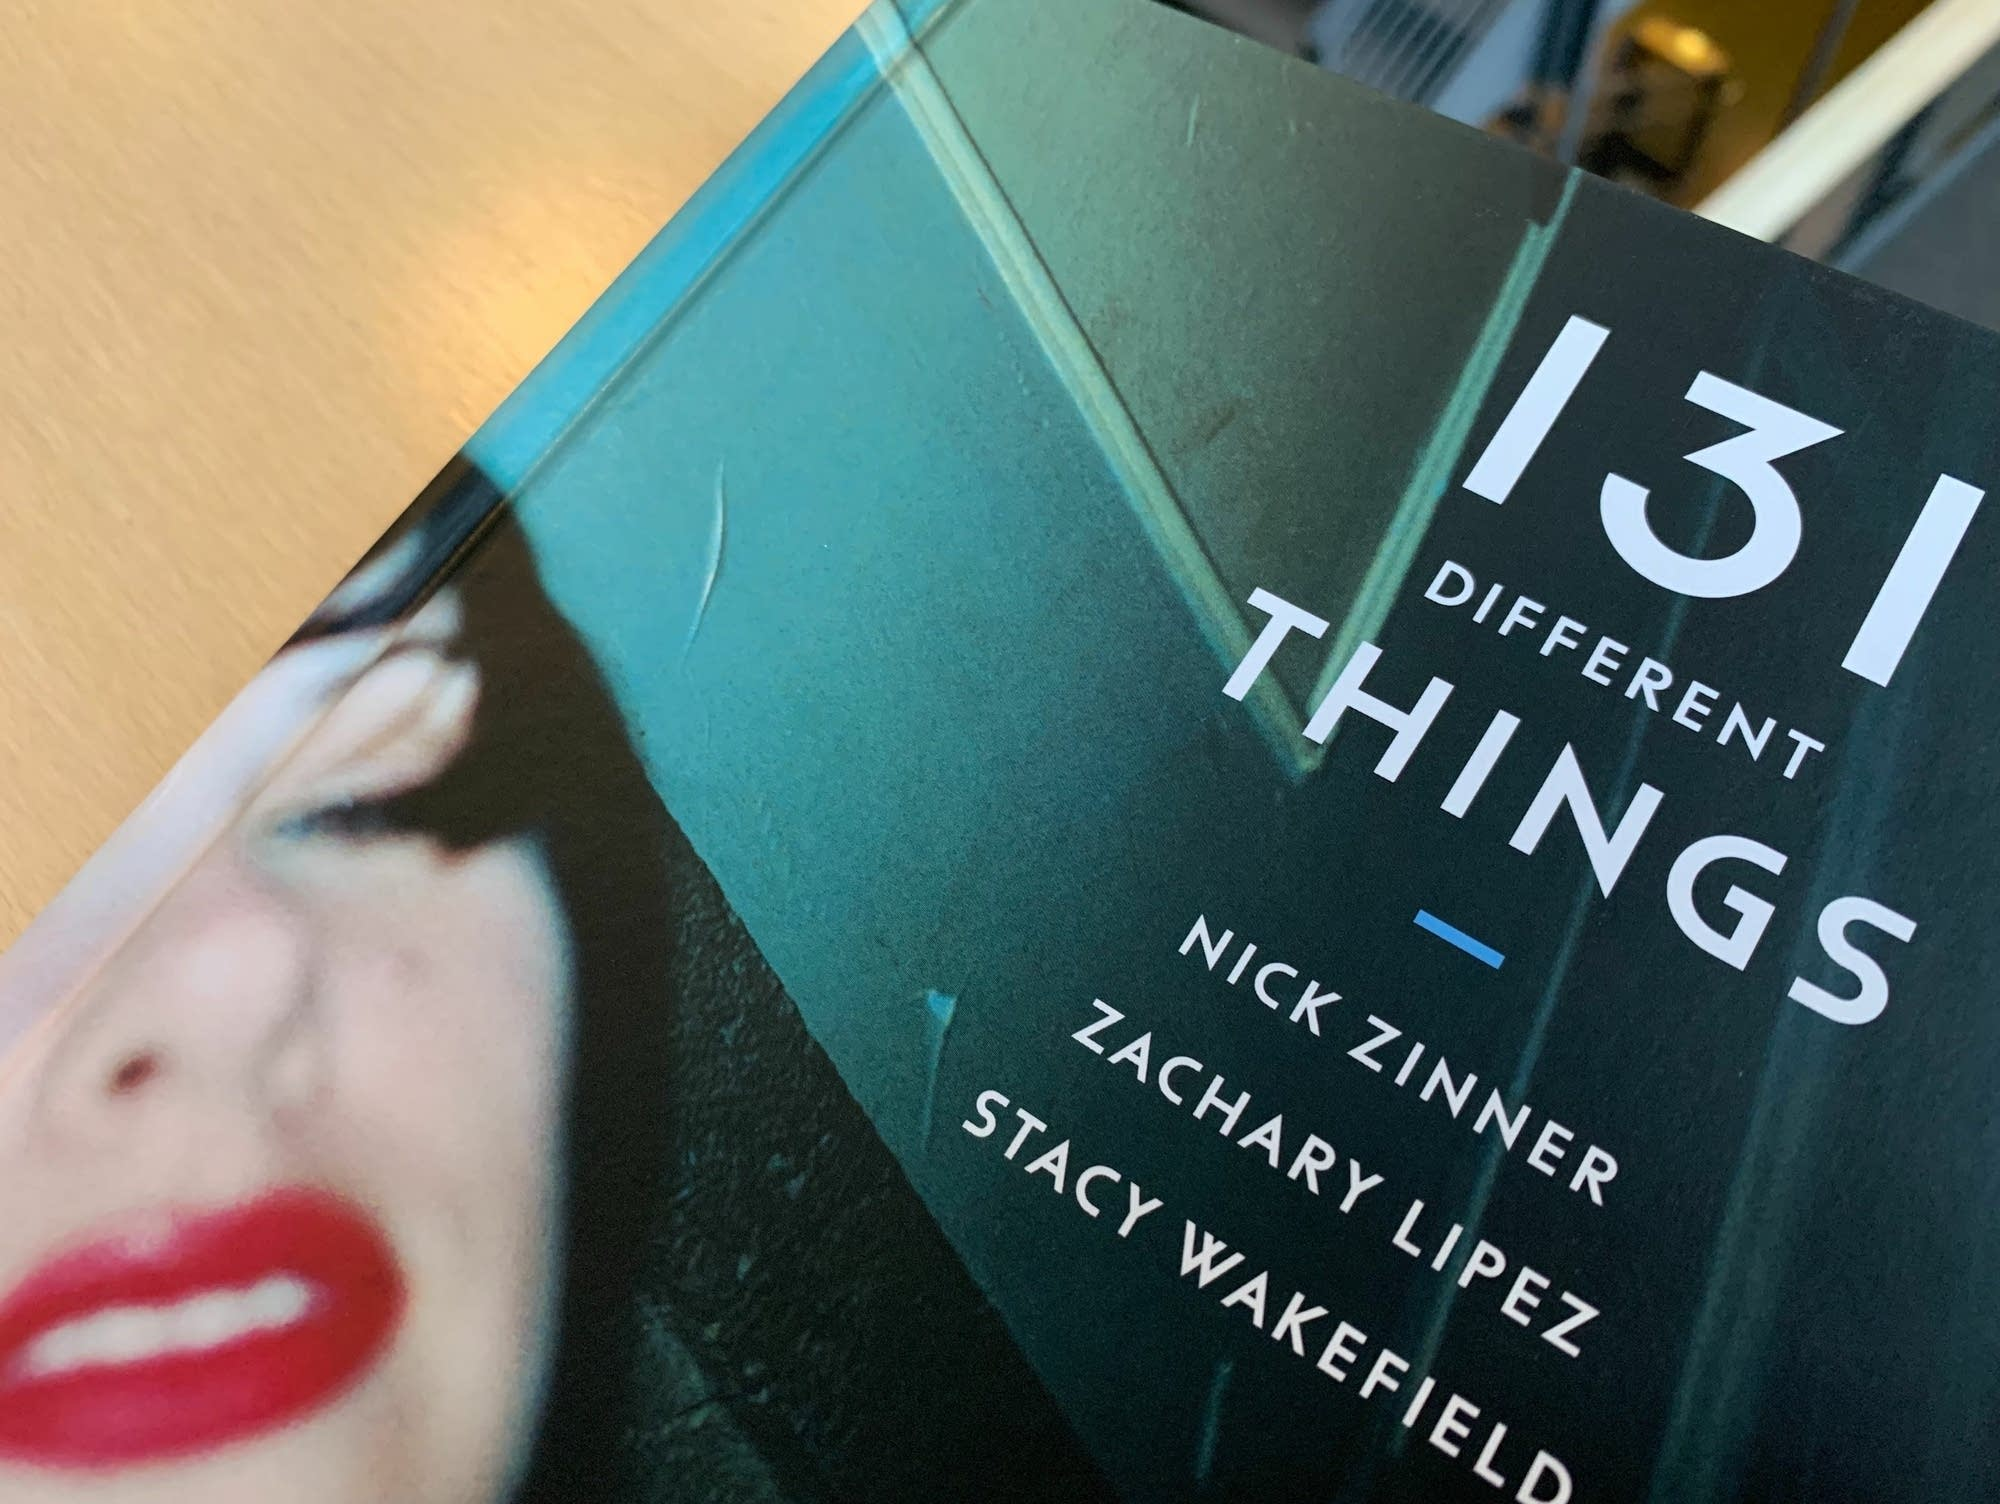 The book '131 Different Things.'